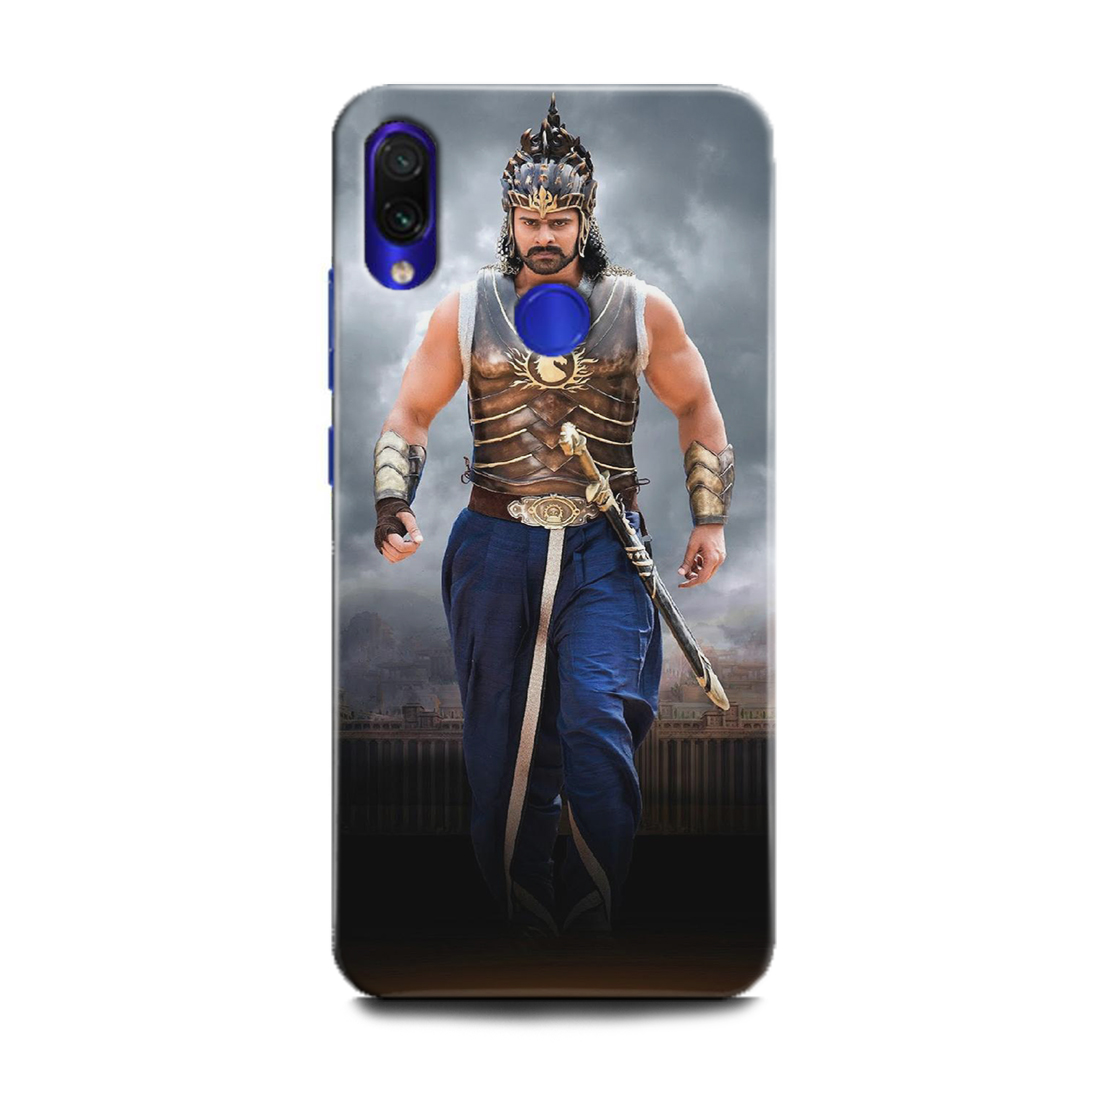 INDICRAFT Mobile Back Cover For Mi Redmi 7 / Hard Case (Bahubali, Bollywood, Prabhas, Tollywood) - AB-Redmi7-0026